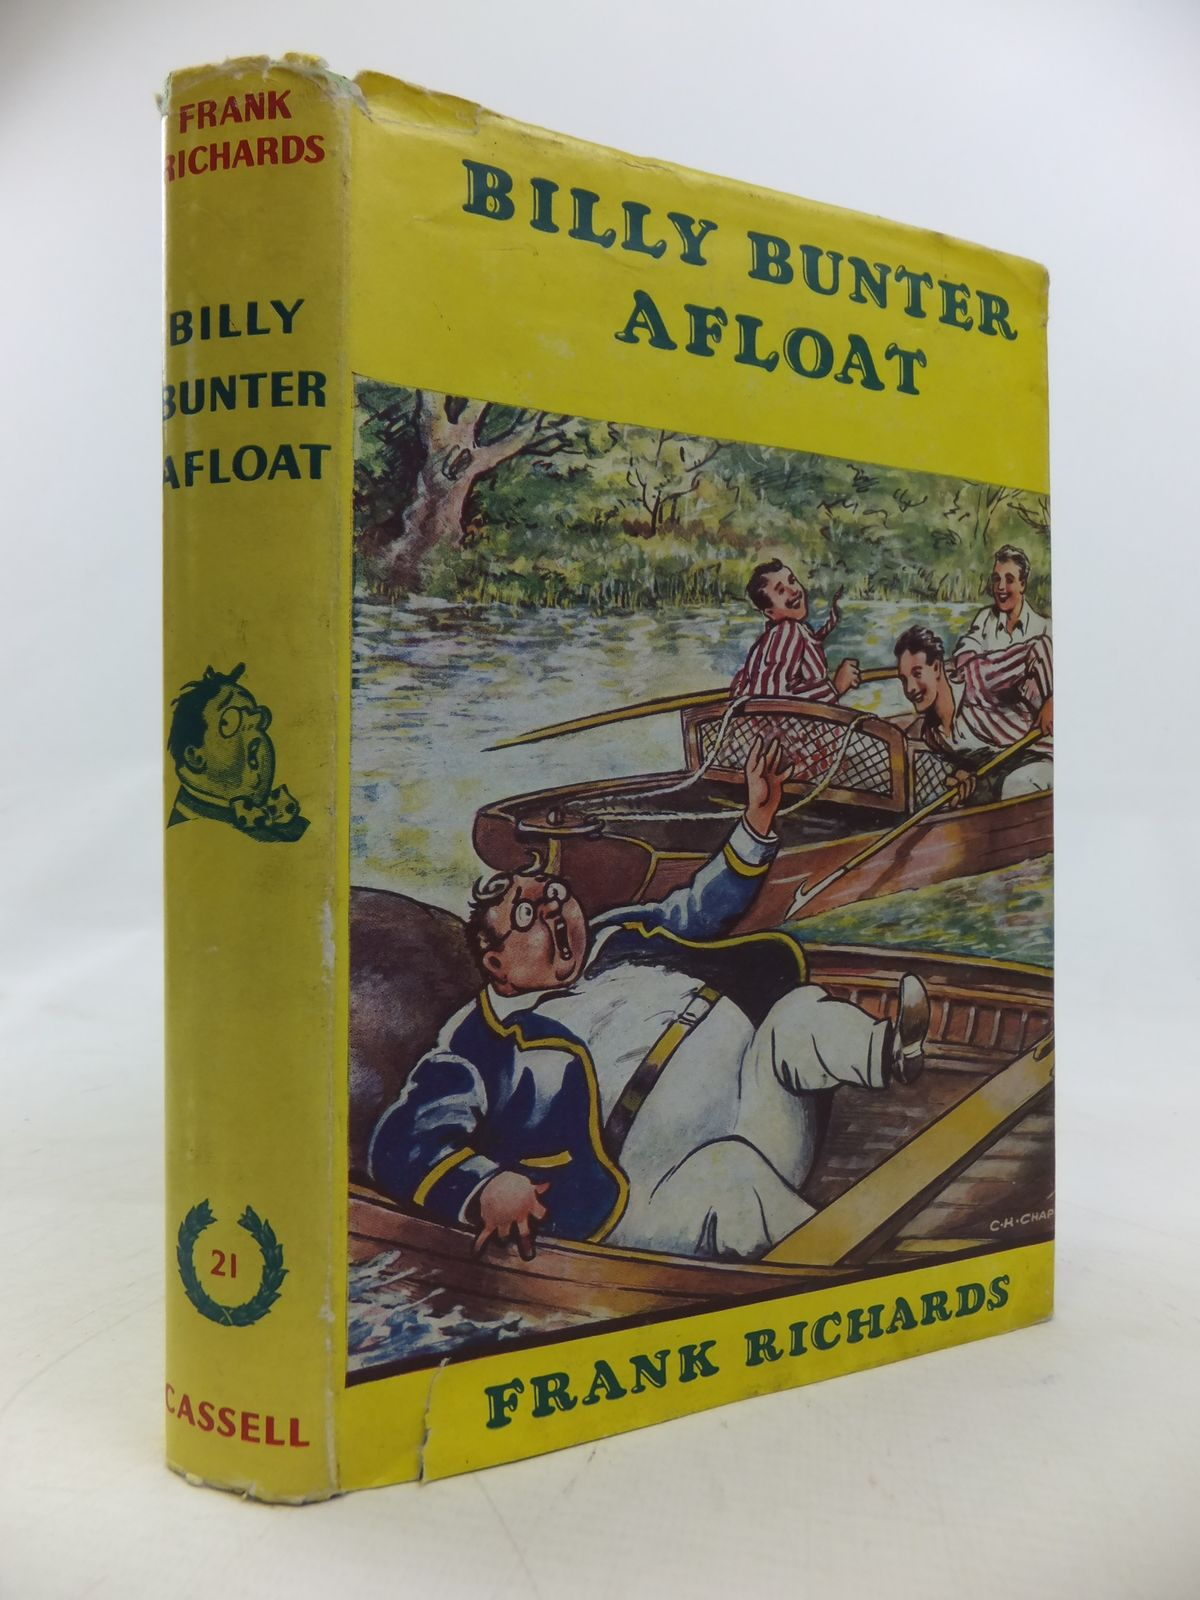 Photo of BILLY BUNTER AFLOAT written by Richards, Frank illustrated by Chapman, C.H. published by Cassell & Co. Ltd. (STOCK CODE: 2115626)  for sale by Stella & Rose's Books